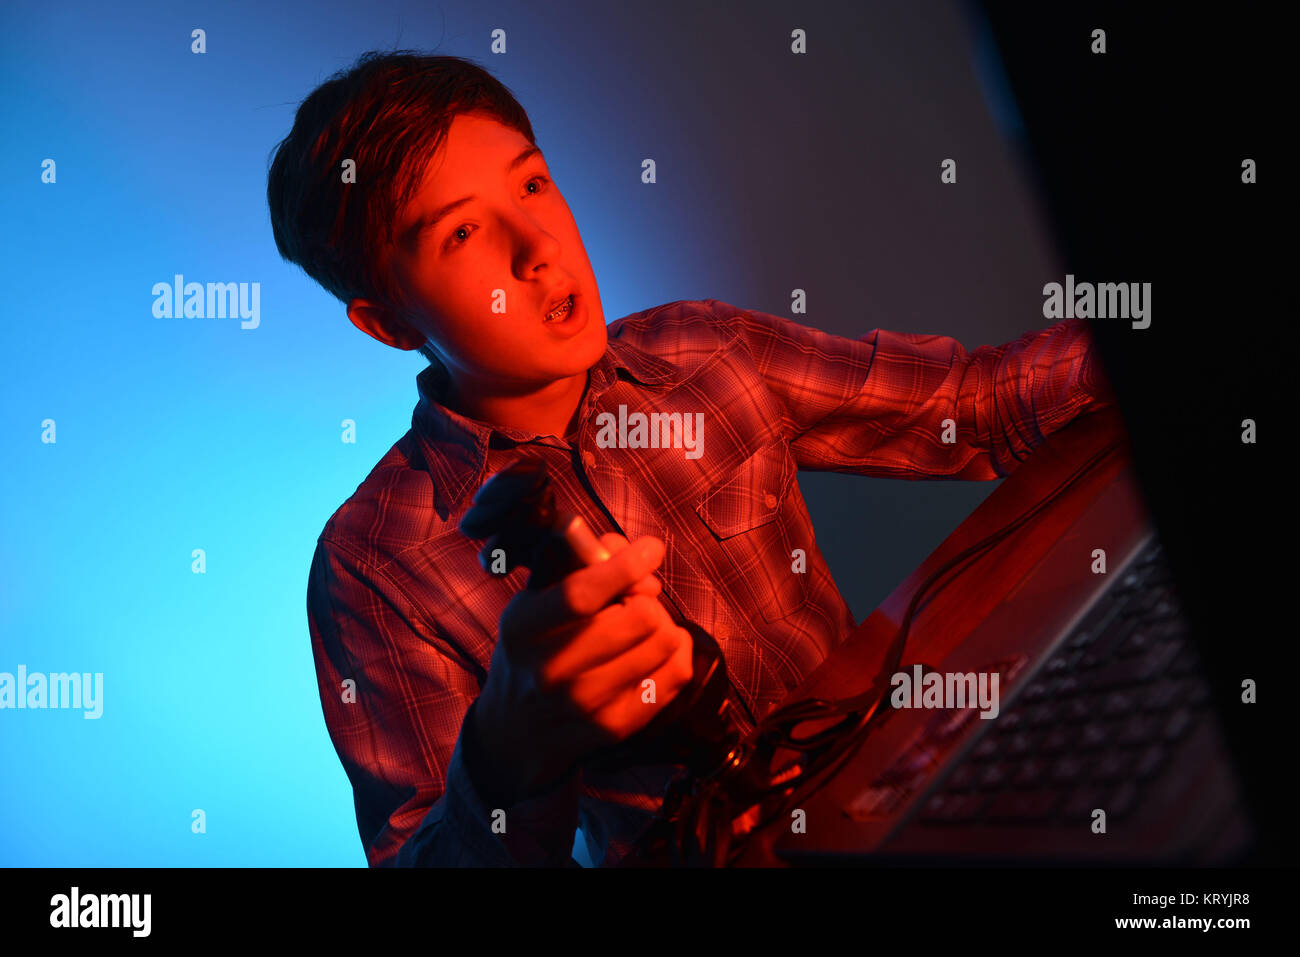 Youngster, computer, play, Jugendlicher, Computer, Spiel - Stock Image